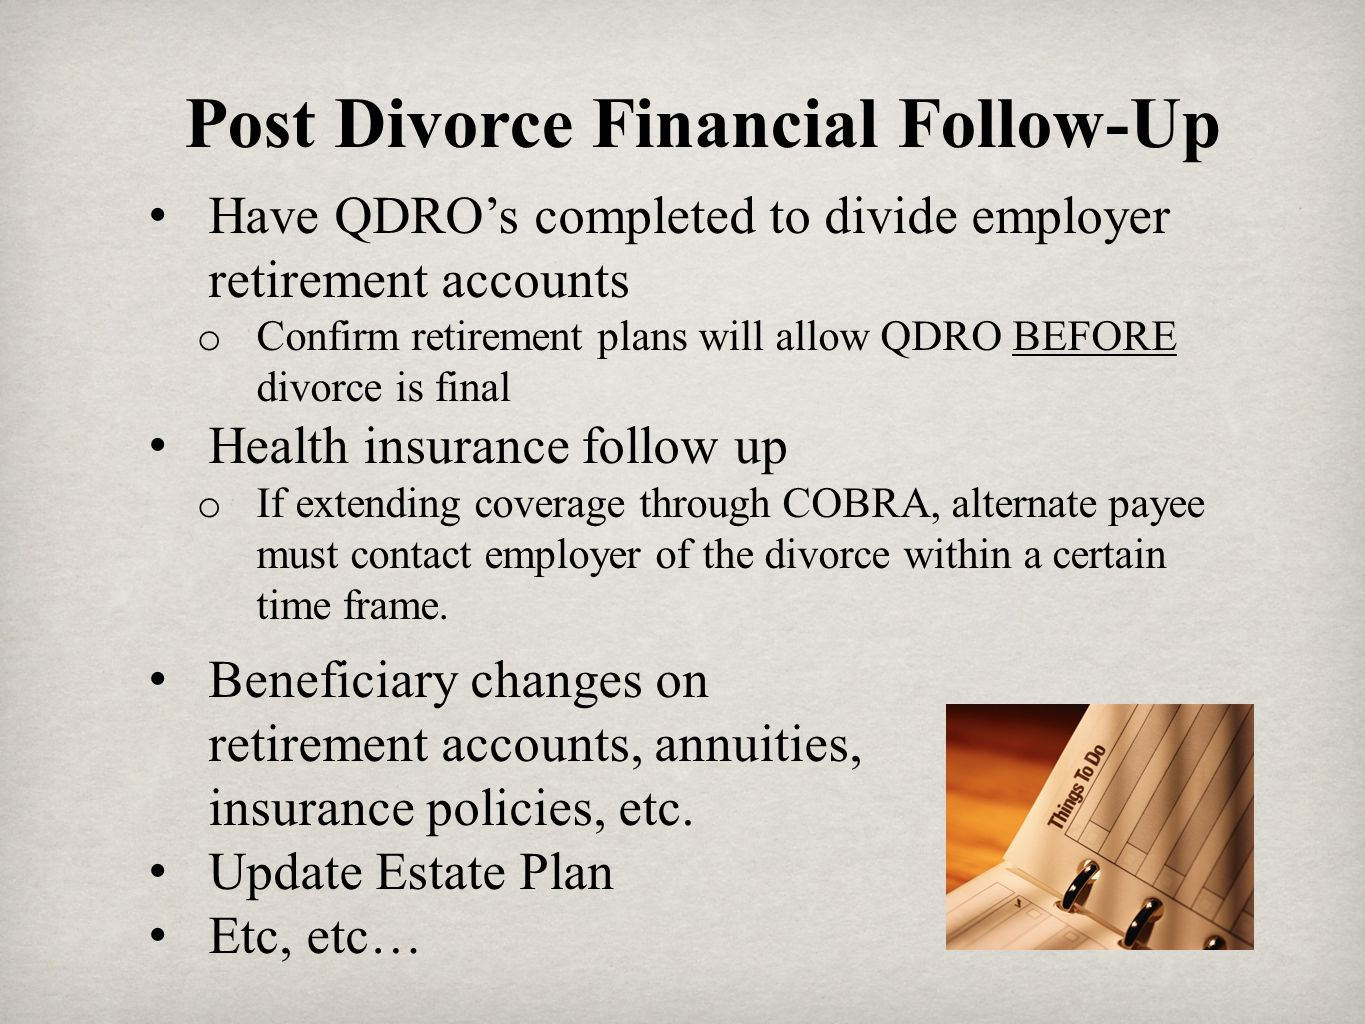 Post Divorce Financial Follow-Up